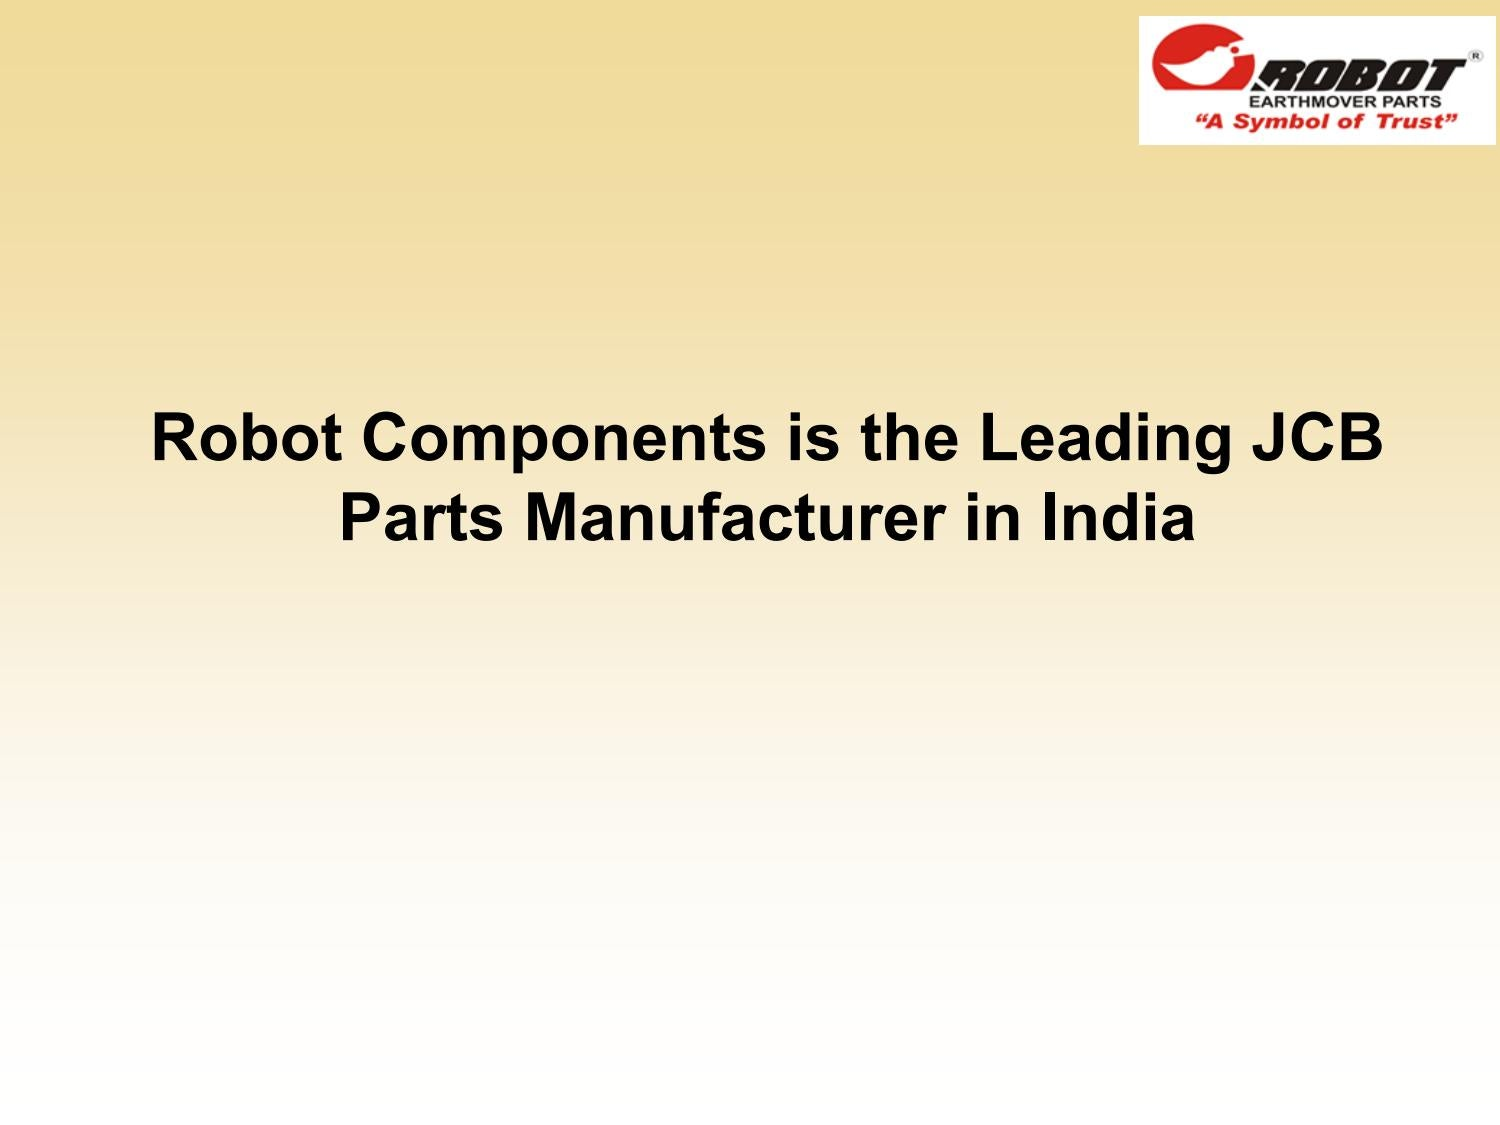 Jcb Supplier Quality Manual Bolens G 12xl Wiring Diagram Service Manuals Keygen Array Robot Components Is The Leading Parts Manufacturer In India By Rh Issuu Com